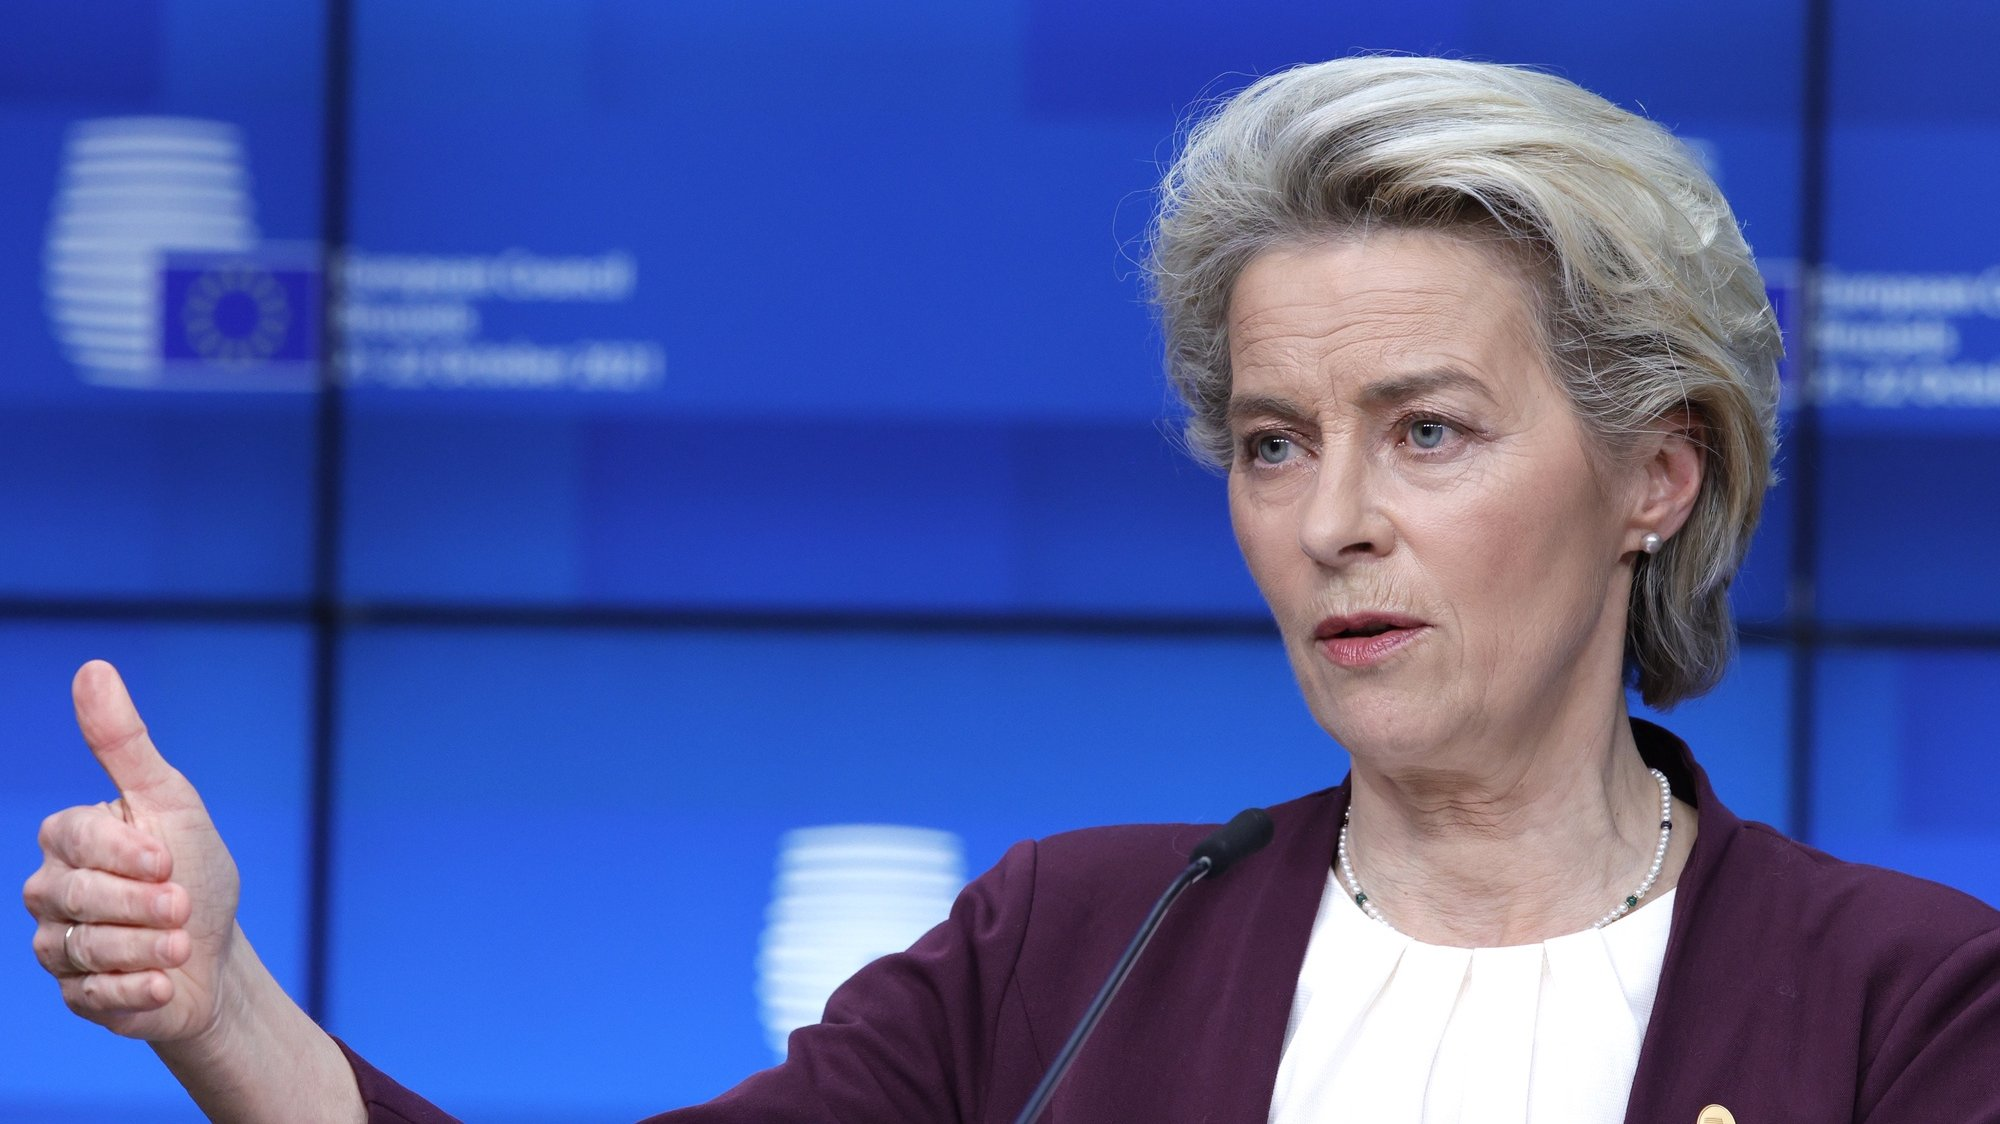 epa09539173 European Commission President Ursula von der Leyen speaks during a media conference at an EU summit in Brussels, Belgium, 22 October 2021. European Union leaders concluded a two-day summit, on 22 October 2021, in which they discussed issues such as climate change, the energy crisis, COVID-19 developments and migration.  EPA/Olivier Matthys / POOL